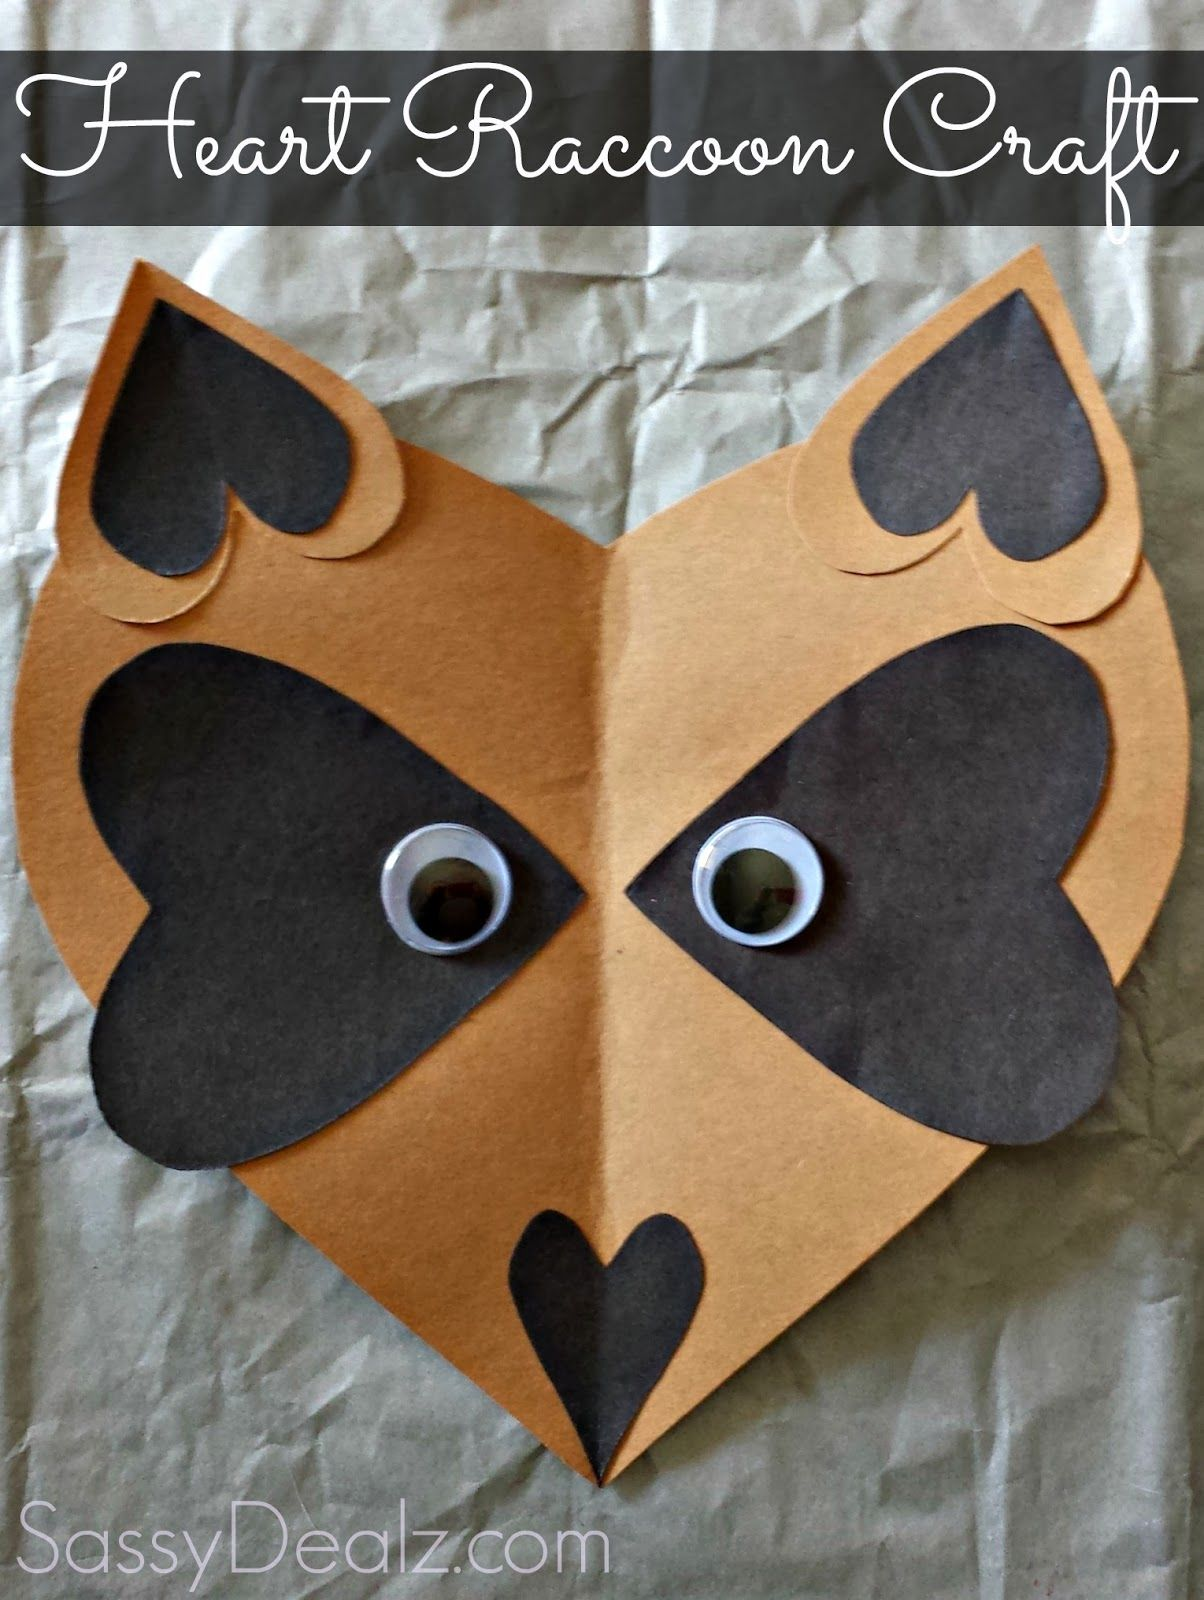 Paper heart raccoon craft for kids valentines day craft or card paper heart raccoon craft for kids valentines day craft or card craftymorning jeuxipadfo Gallery